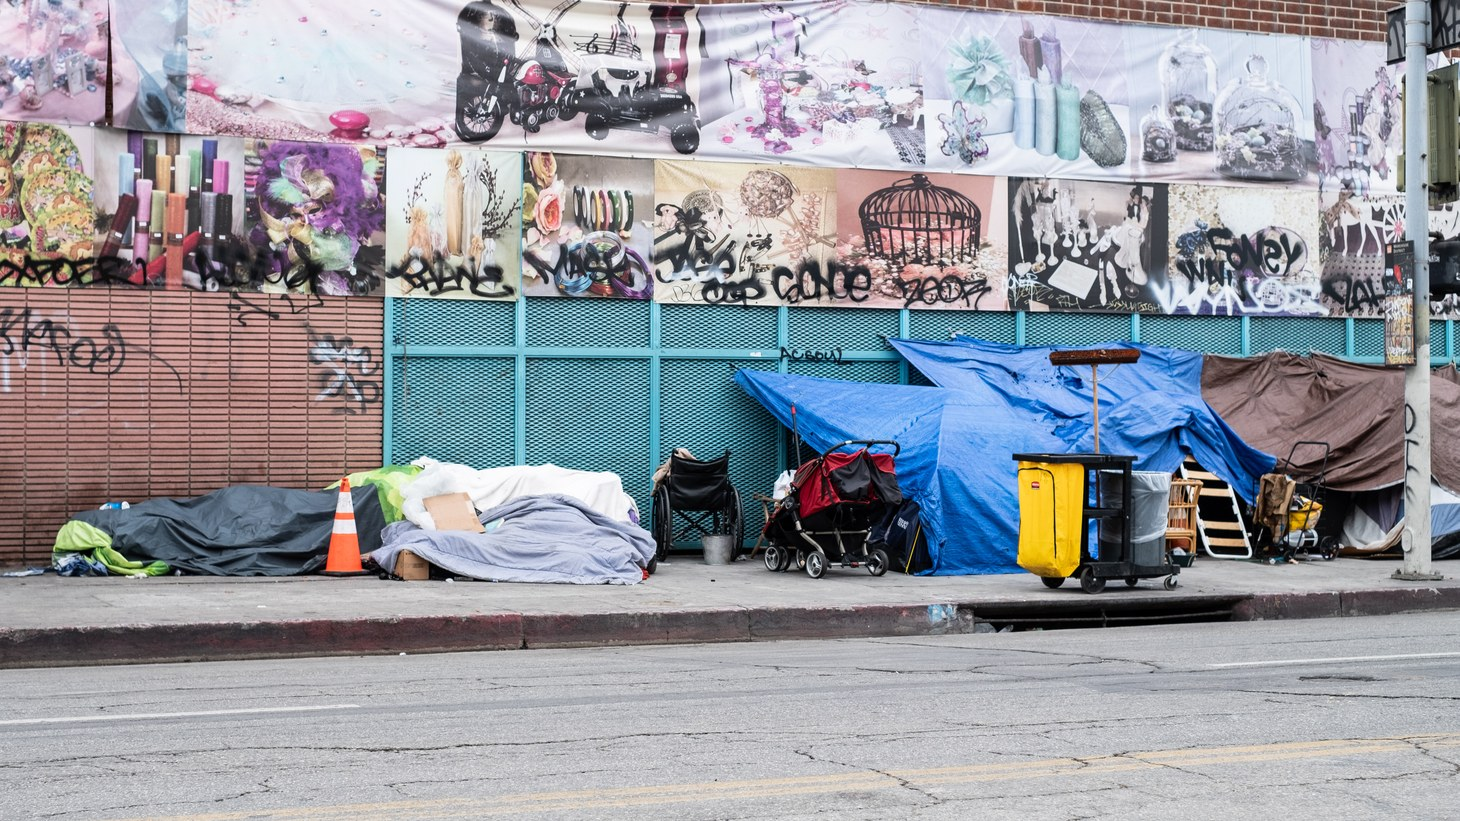 A homeless camp in downtown LA's Fashion District, spring 2019.